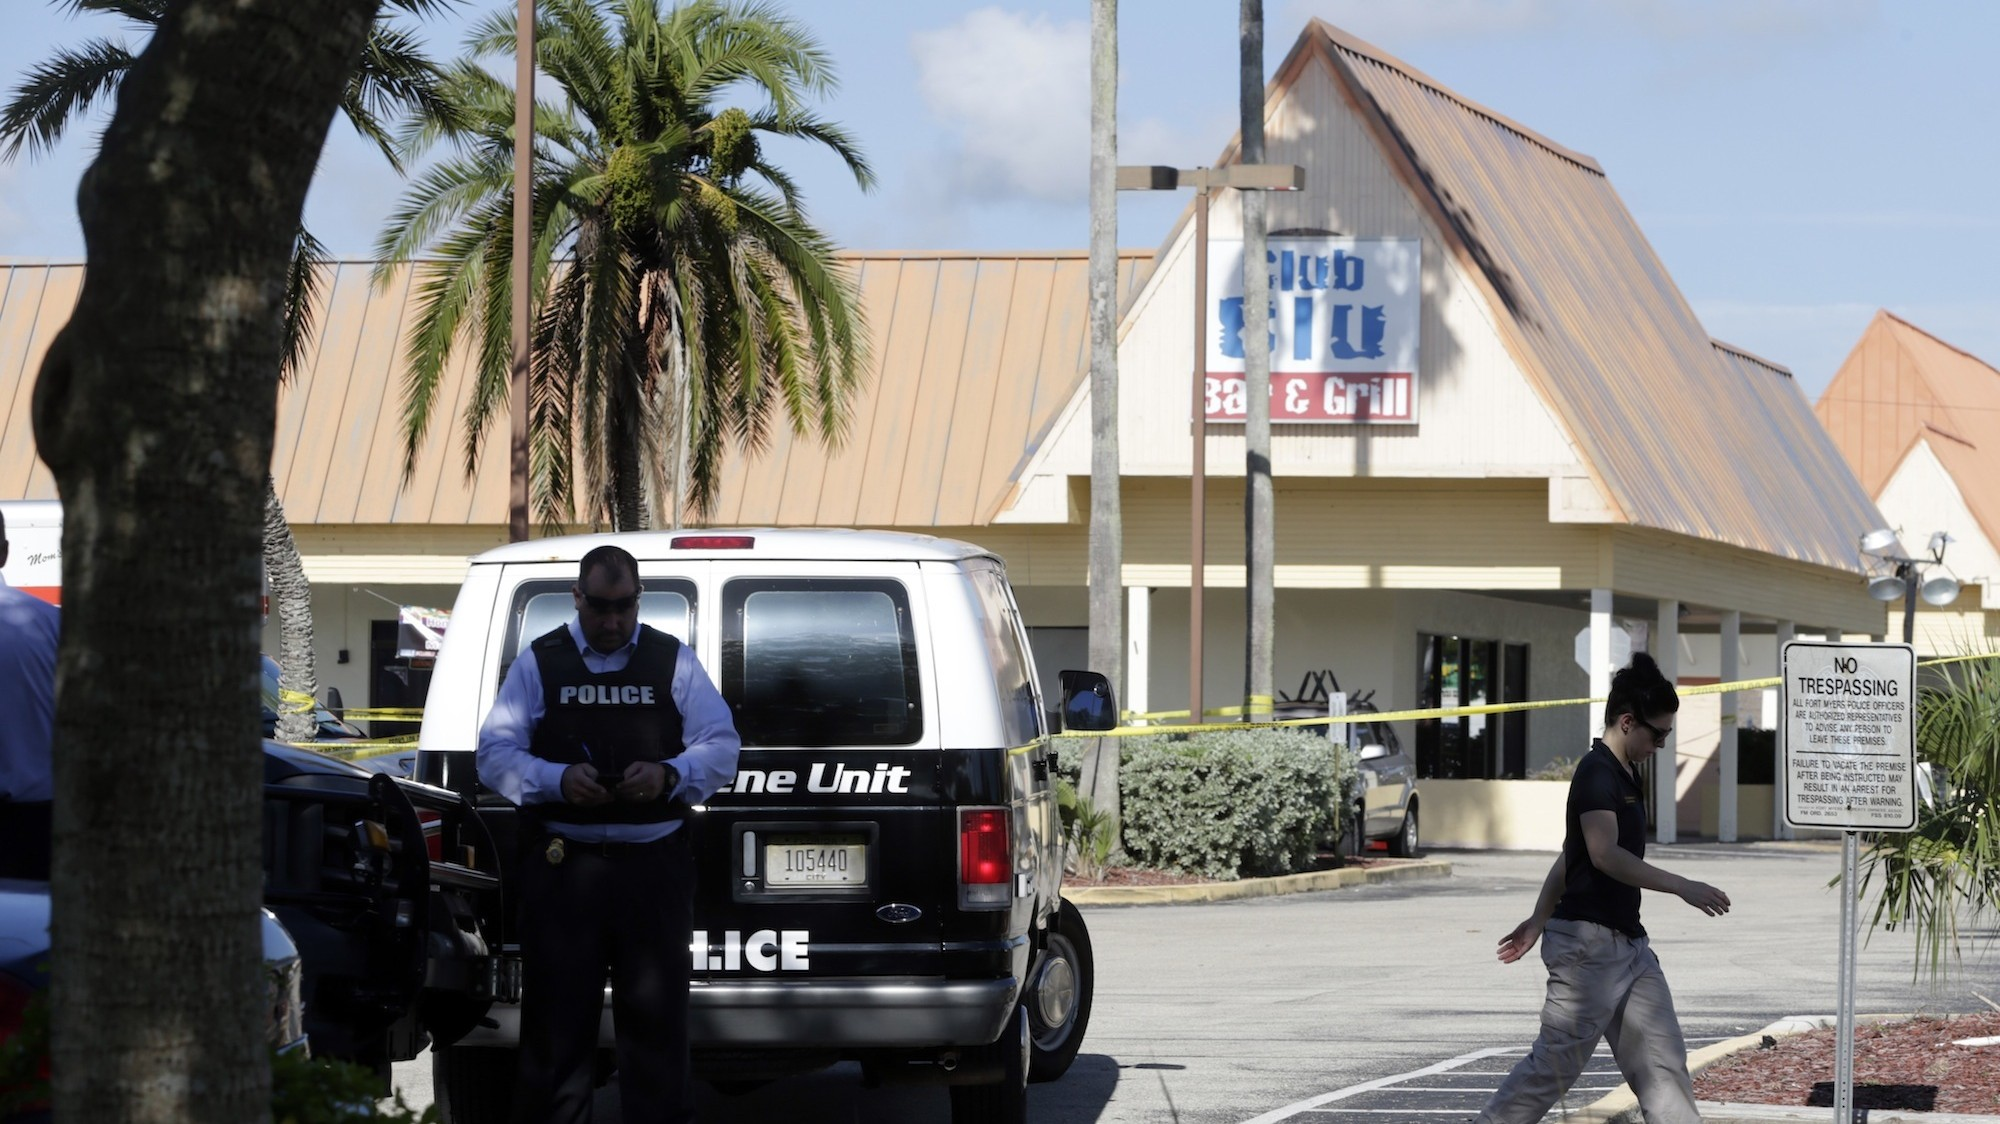 Here's what we know about the mass shooting last night at a Florida club